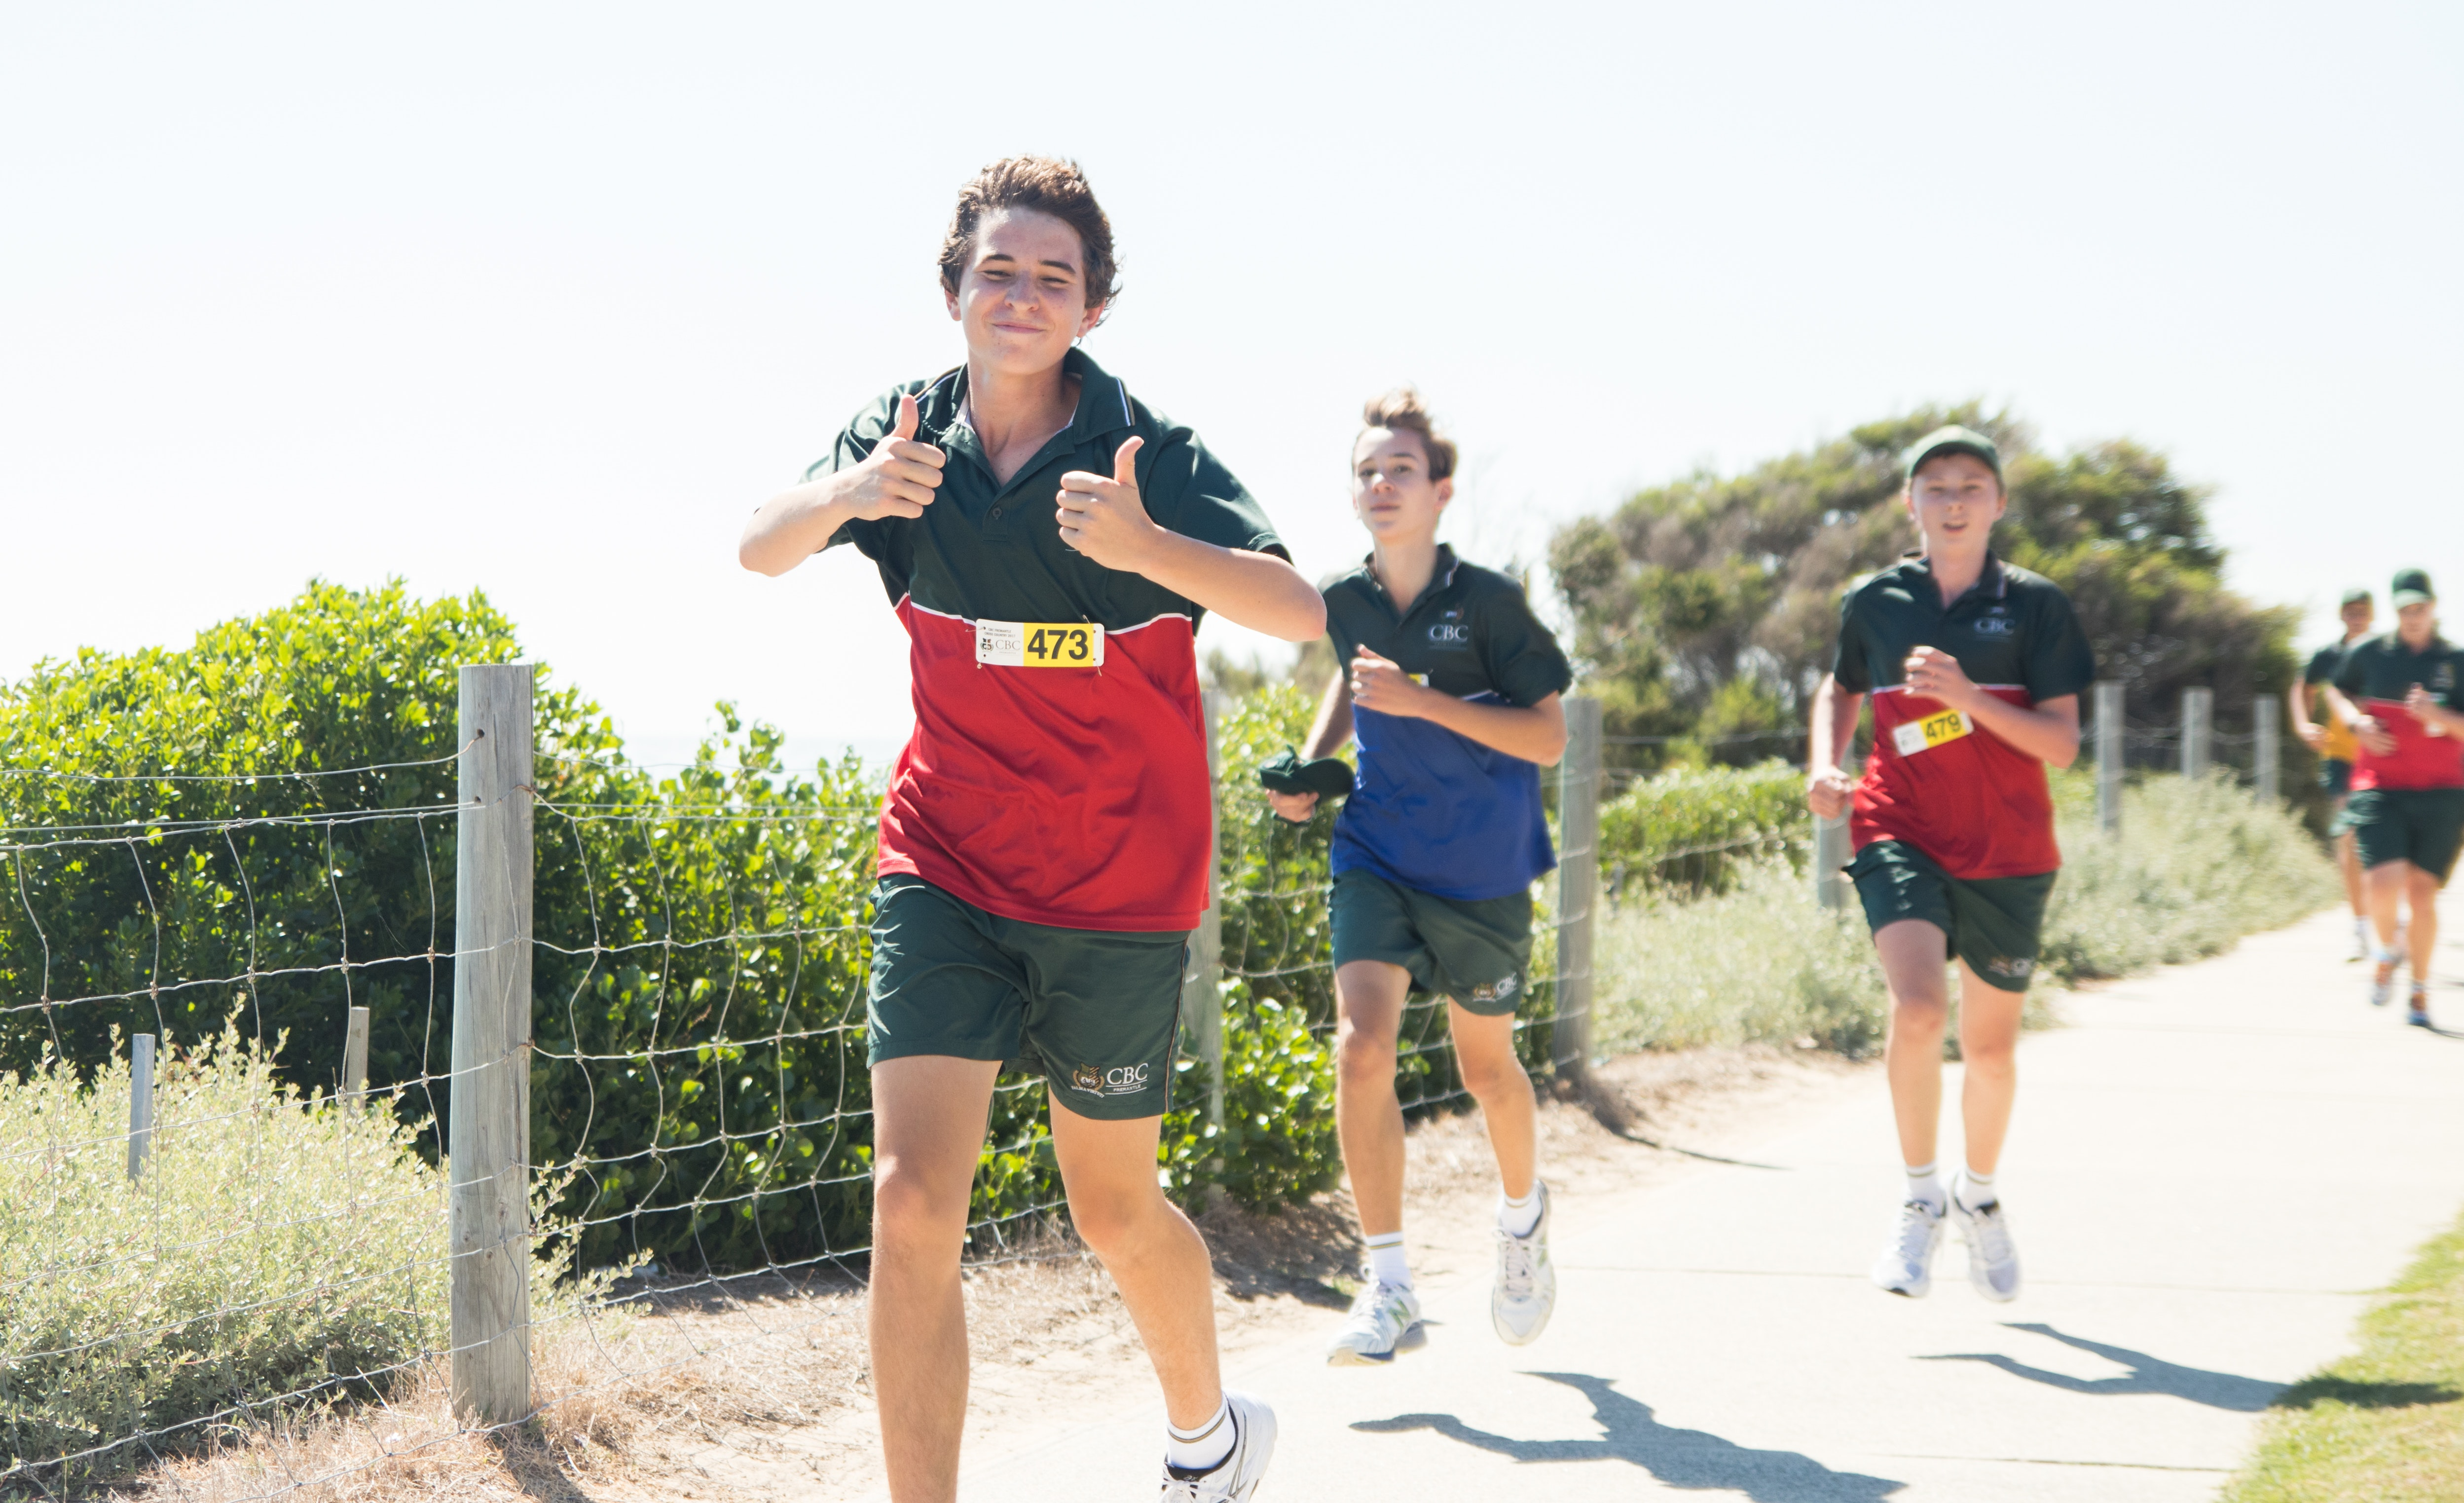 Patrick dominates House Cross Country